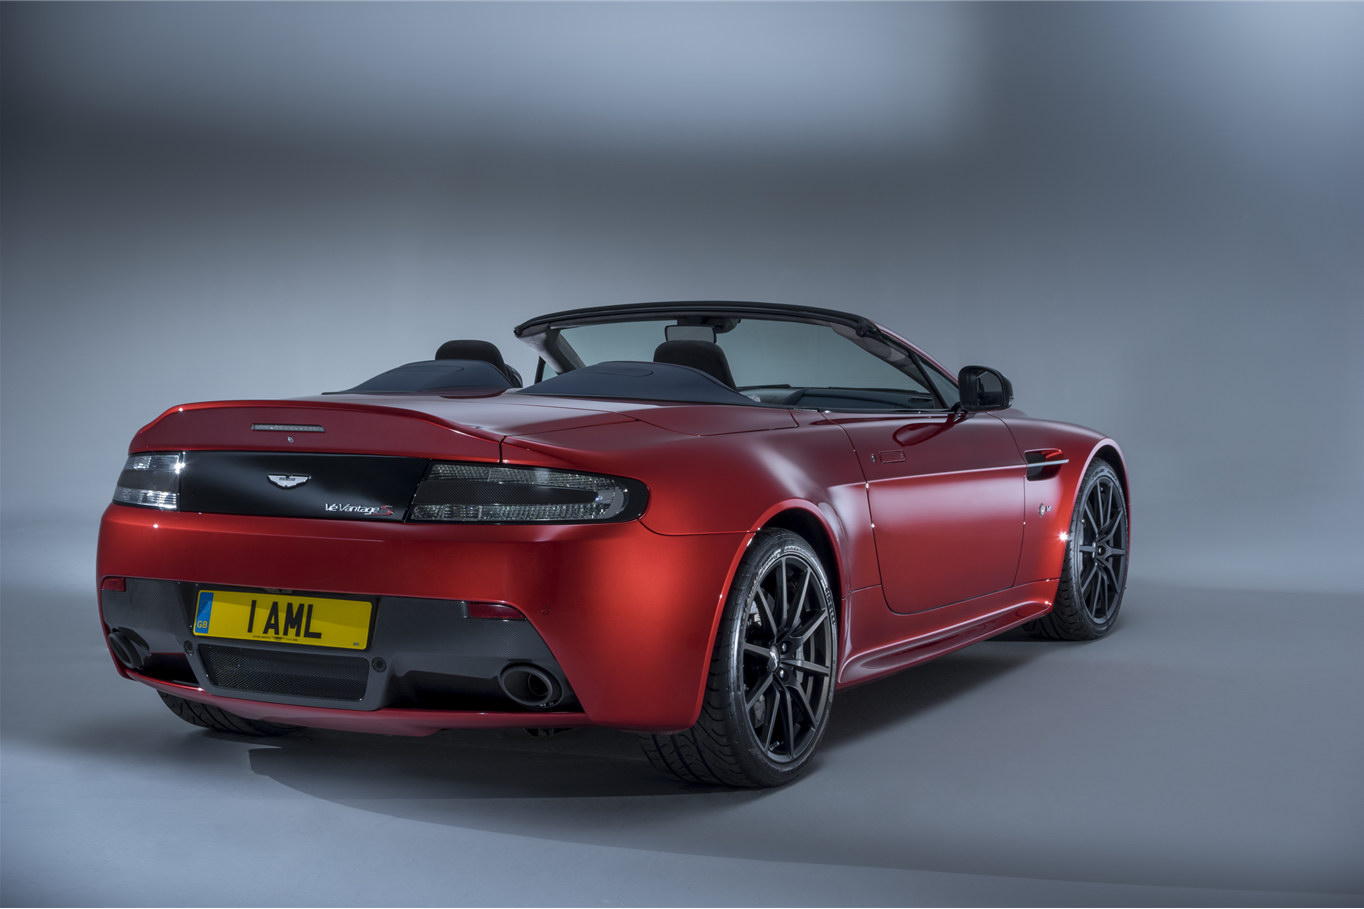 voici la nouvelle aston martin v12 vantage s roadster. Black Bedroom Furniture Sets. Home Design Ideas